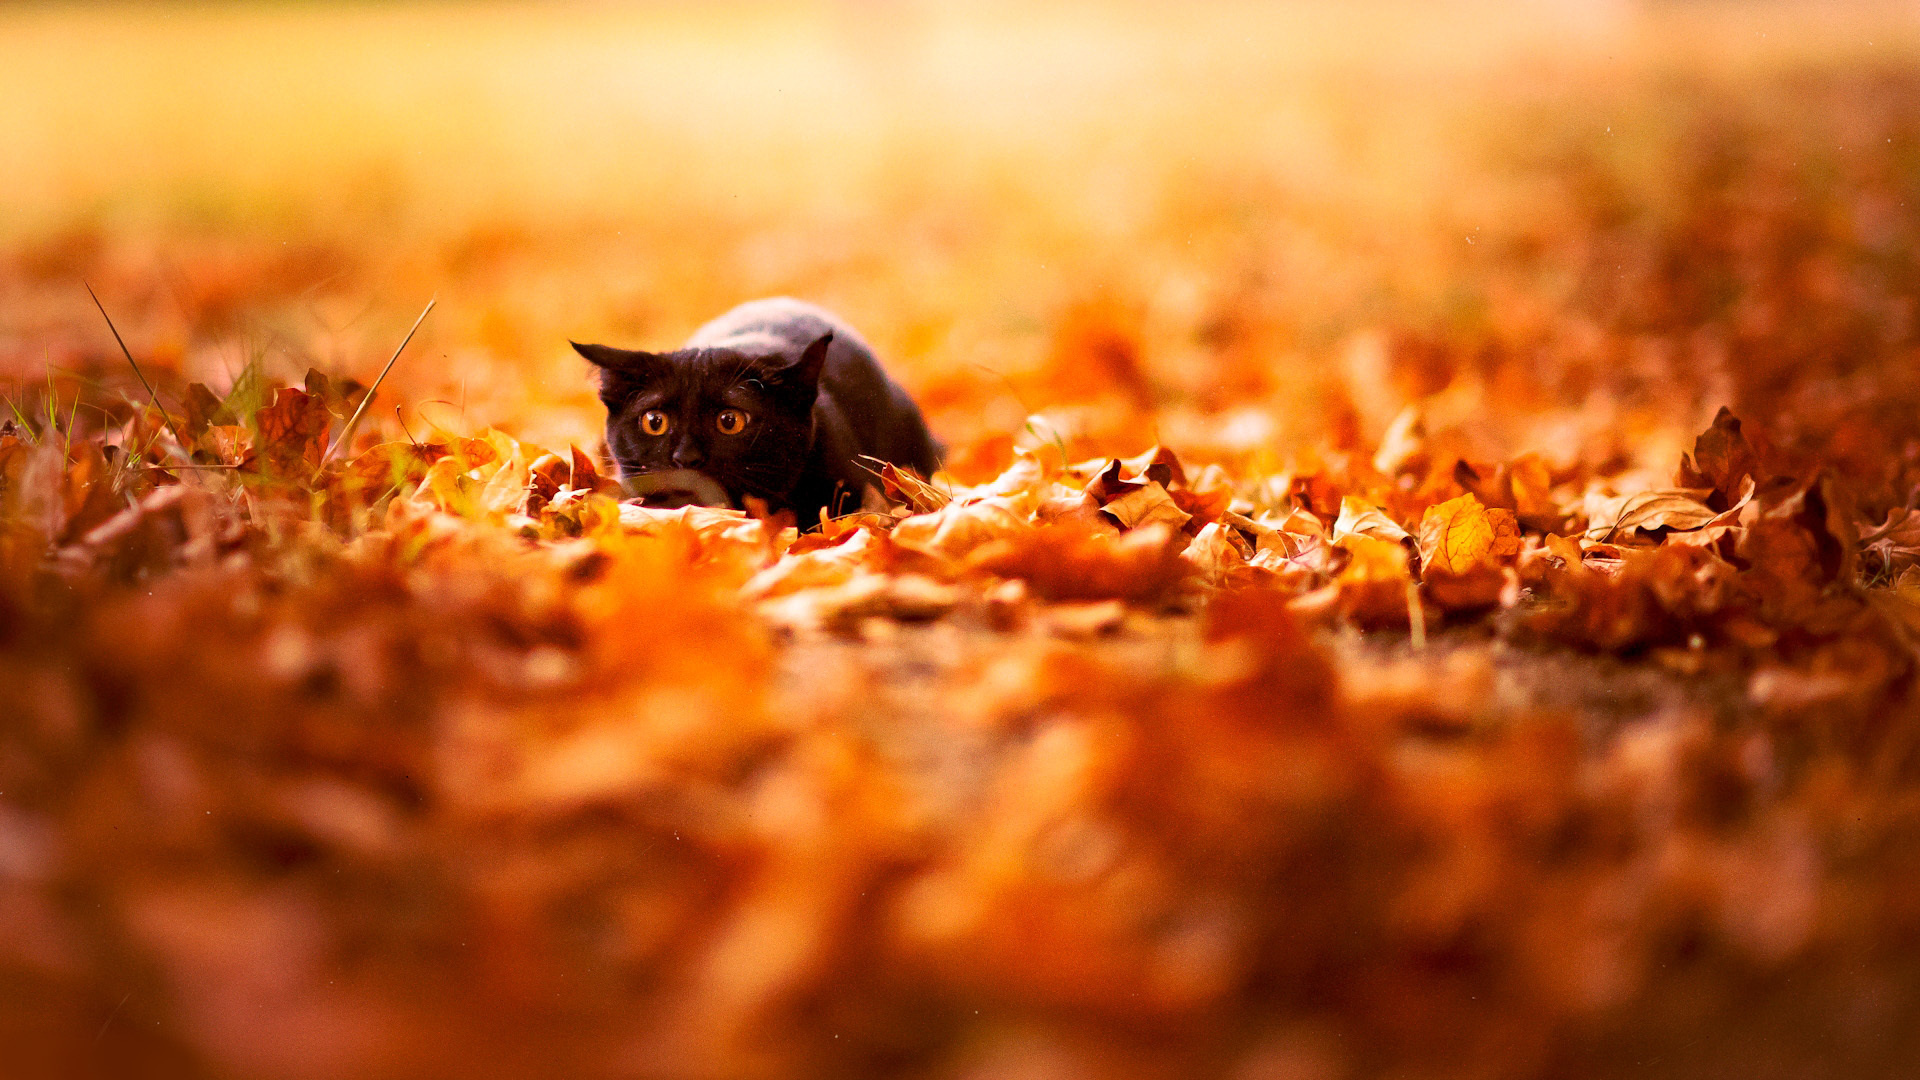 Fall Desktop Wallpaper Hd Autumn leaves 1920x1080